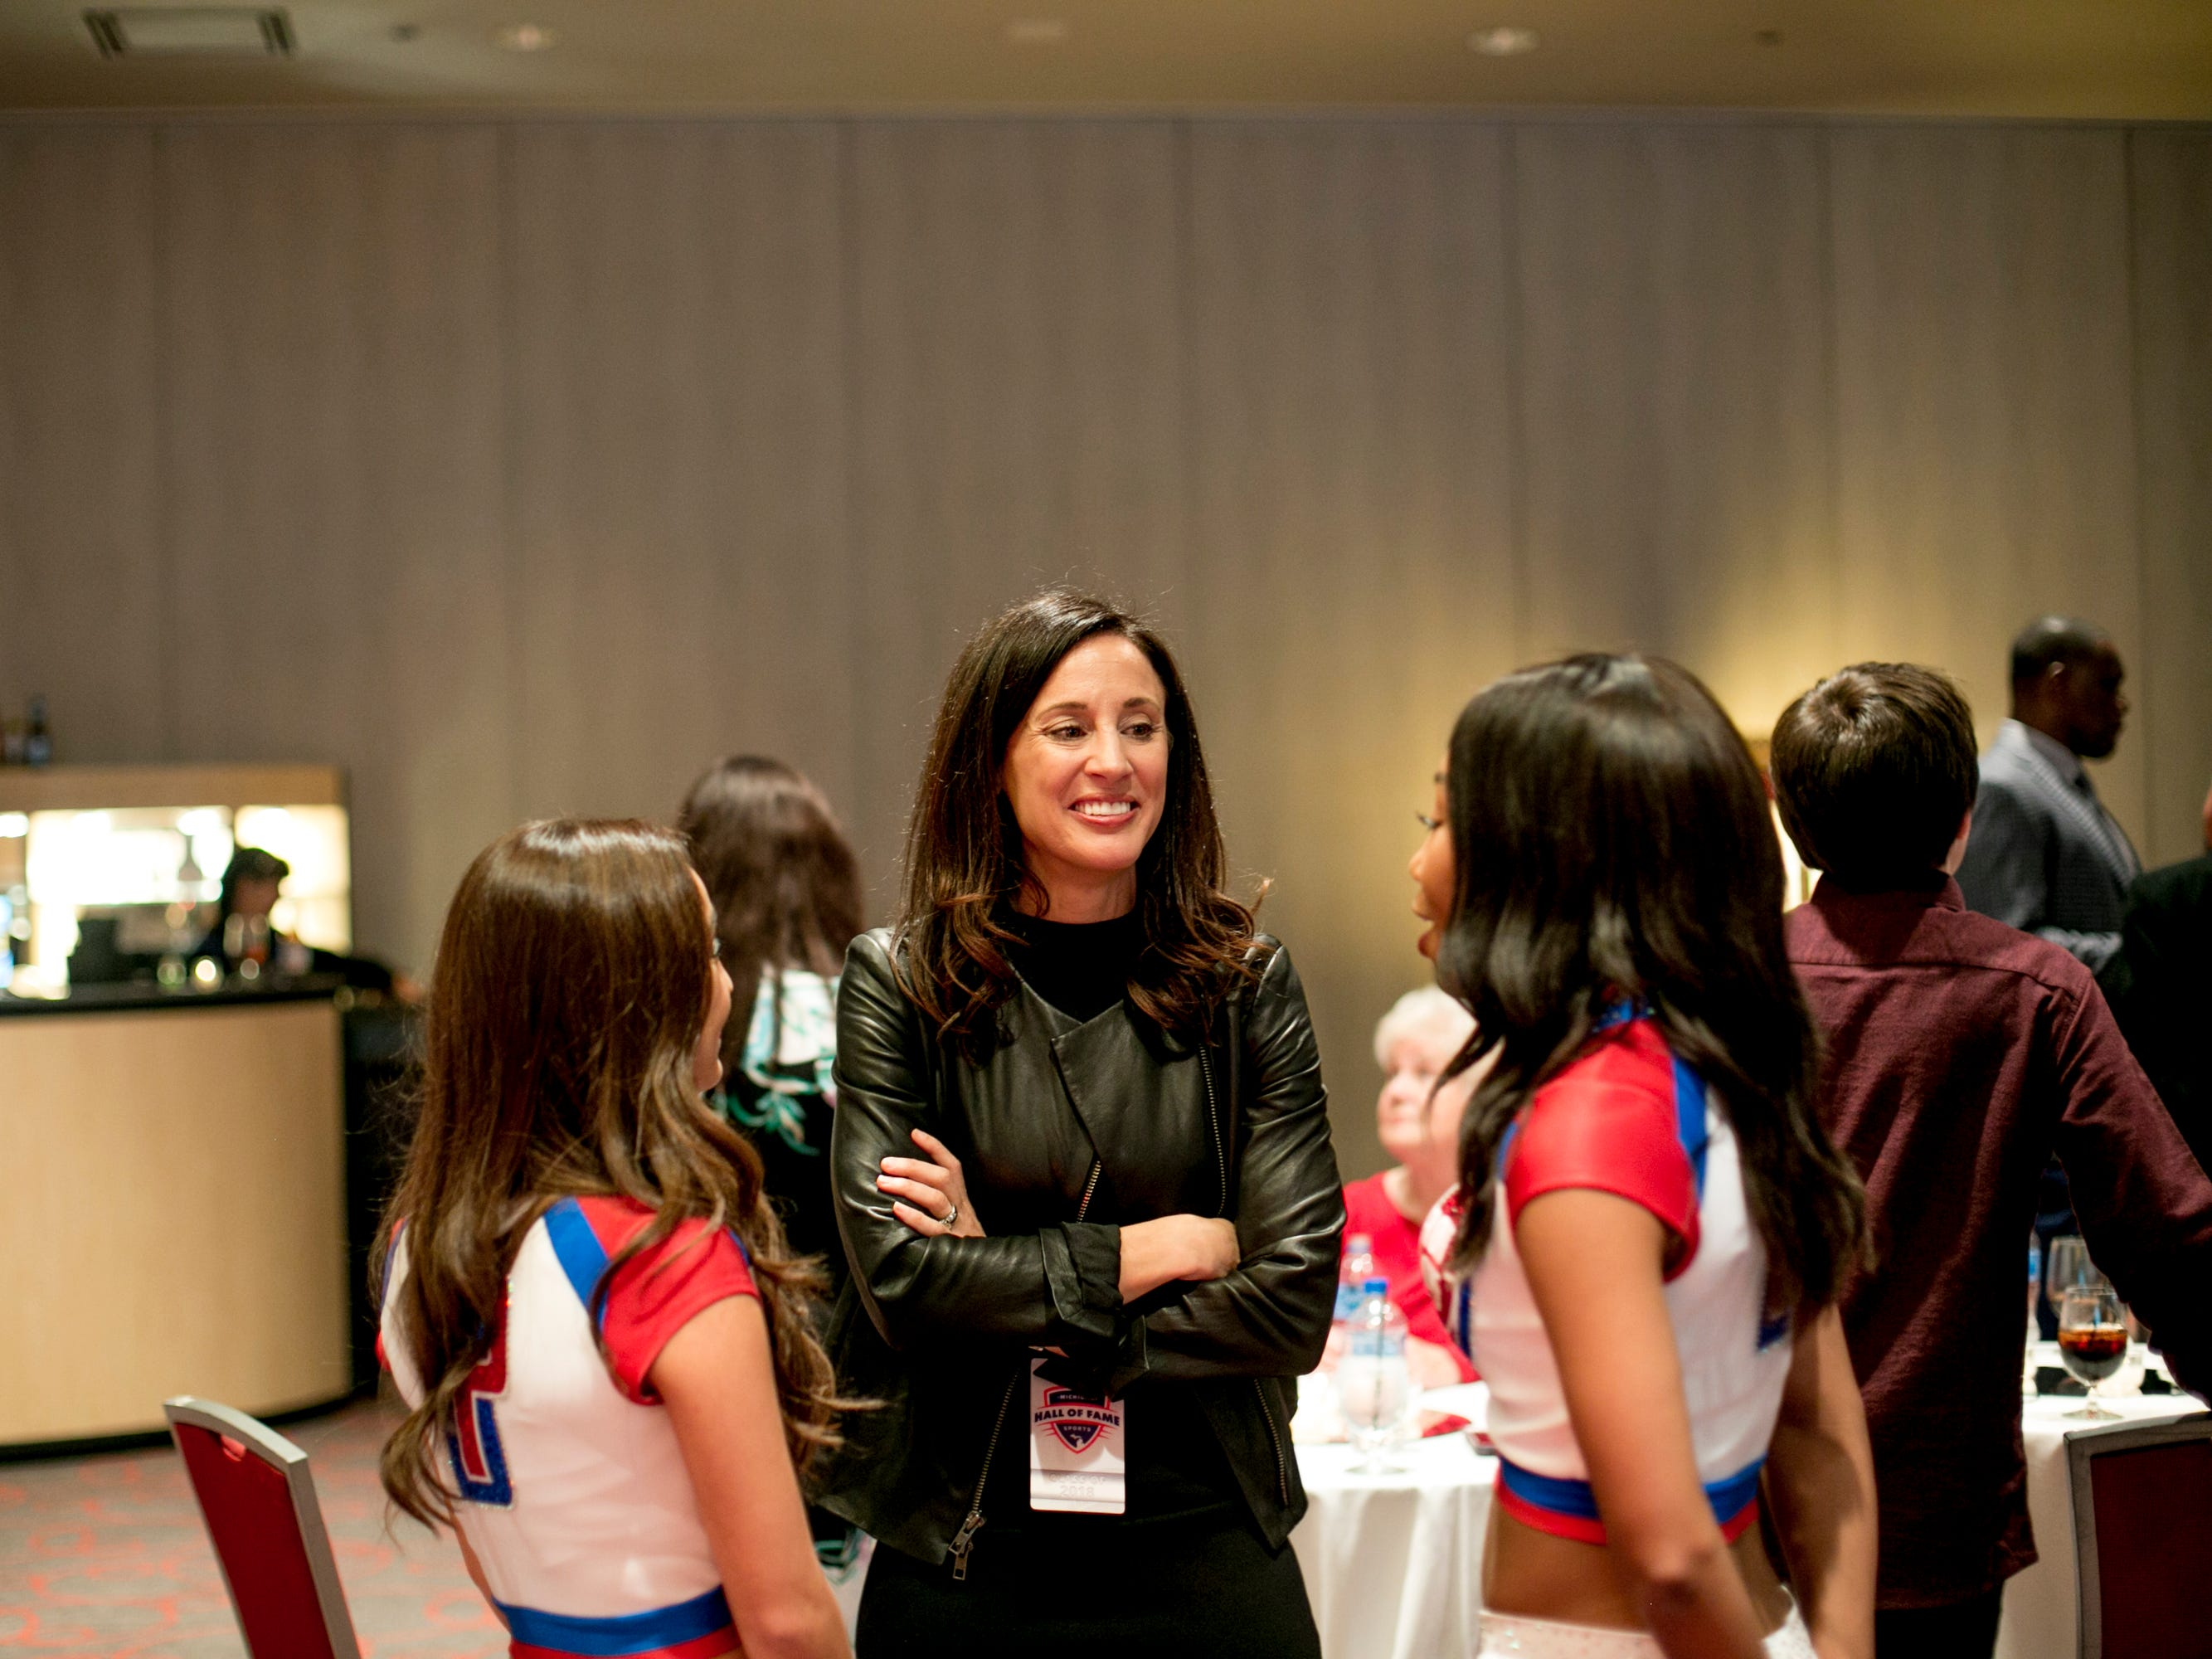 Former Olympic soccer players Kate Sobrero Markgraf speaks to the a pair of Detroit Pistons cheerleaders before the ceremony.